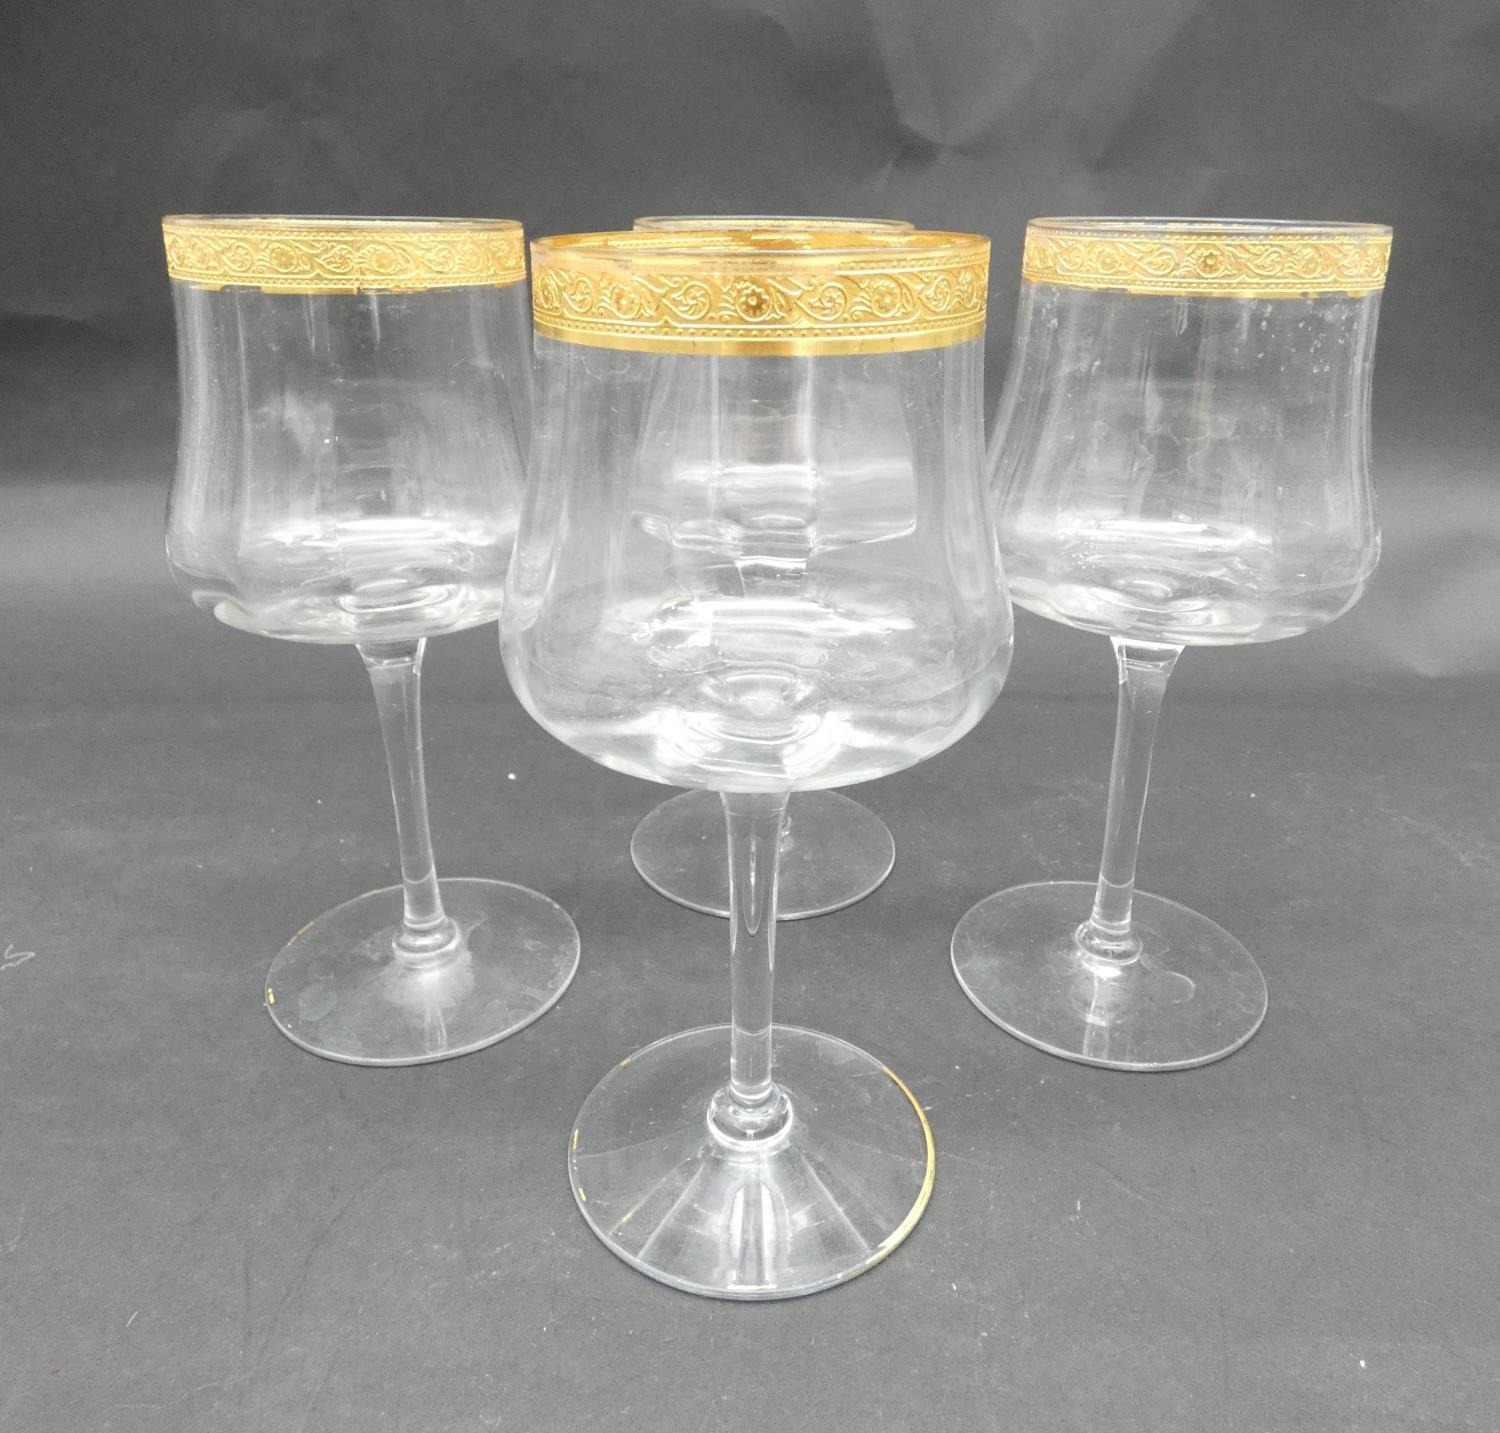 A collection of glasses. Including a set of five sherry glasses with gilded Orion symbols, along - Image 11 of 14